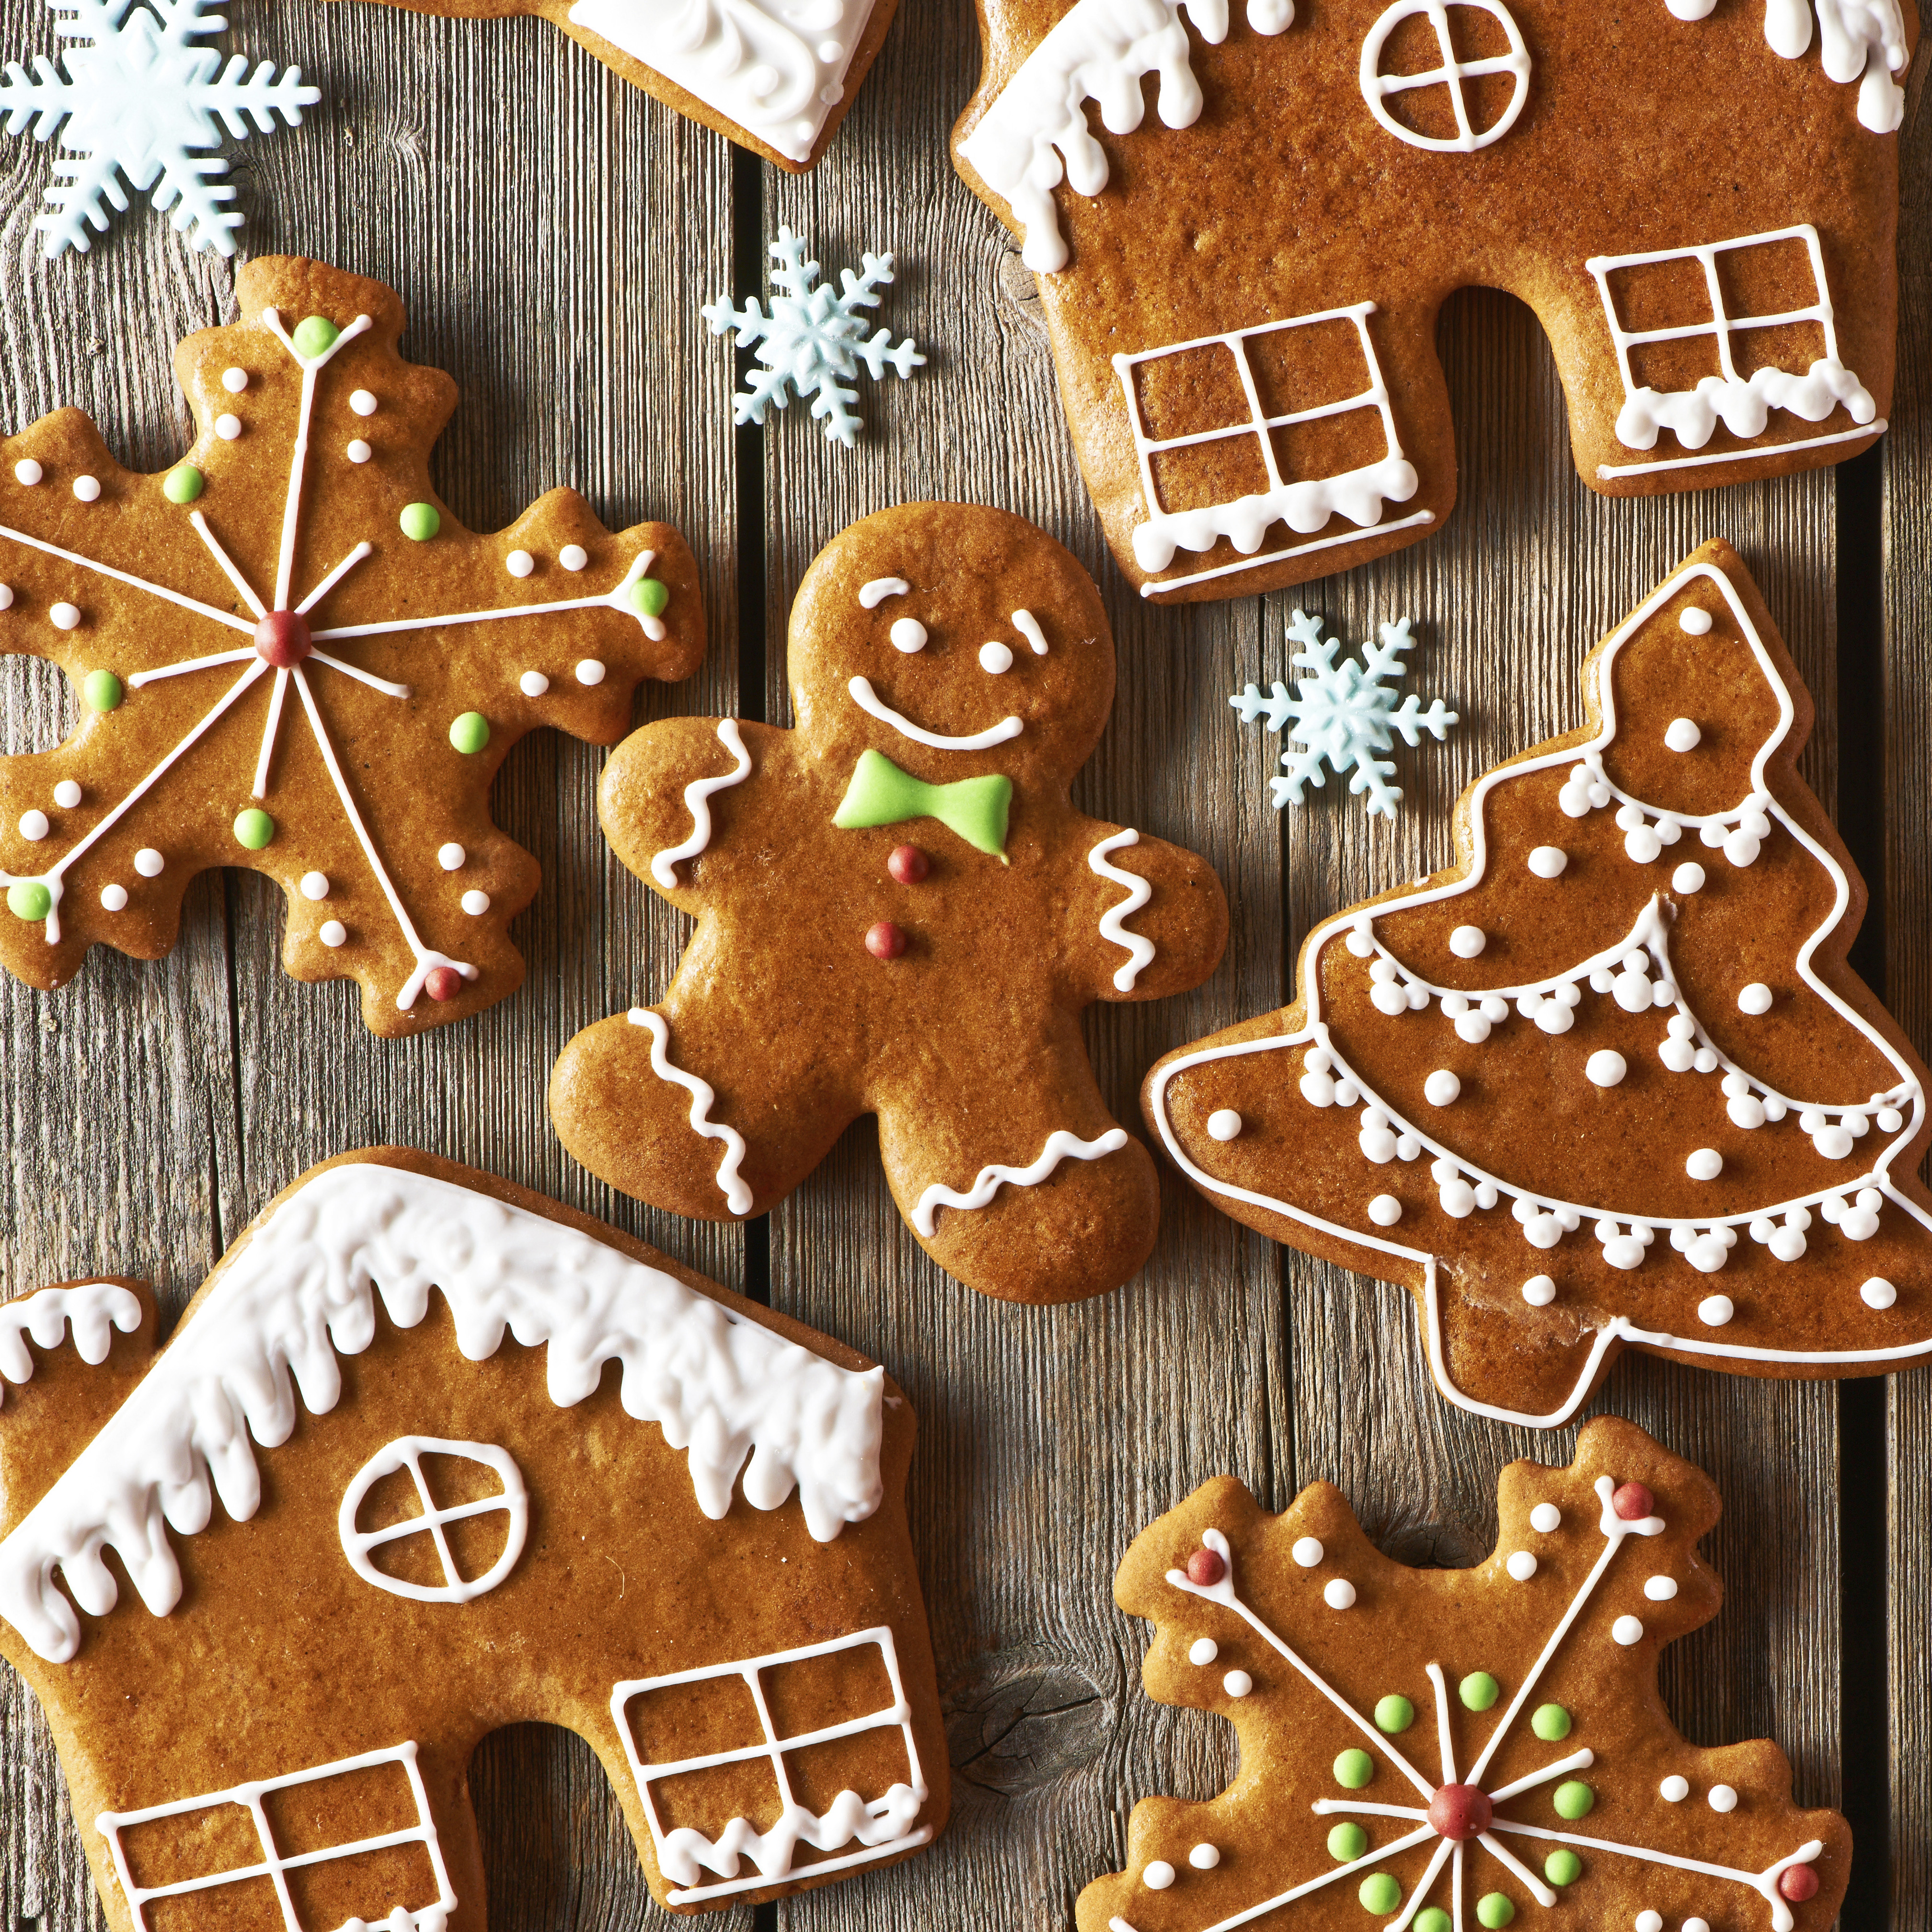 Exceptional Christian Ladies Christmas Party Ideas Part - 5: Small Groups